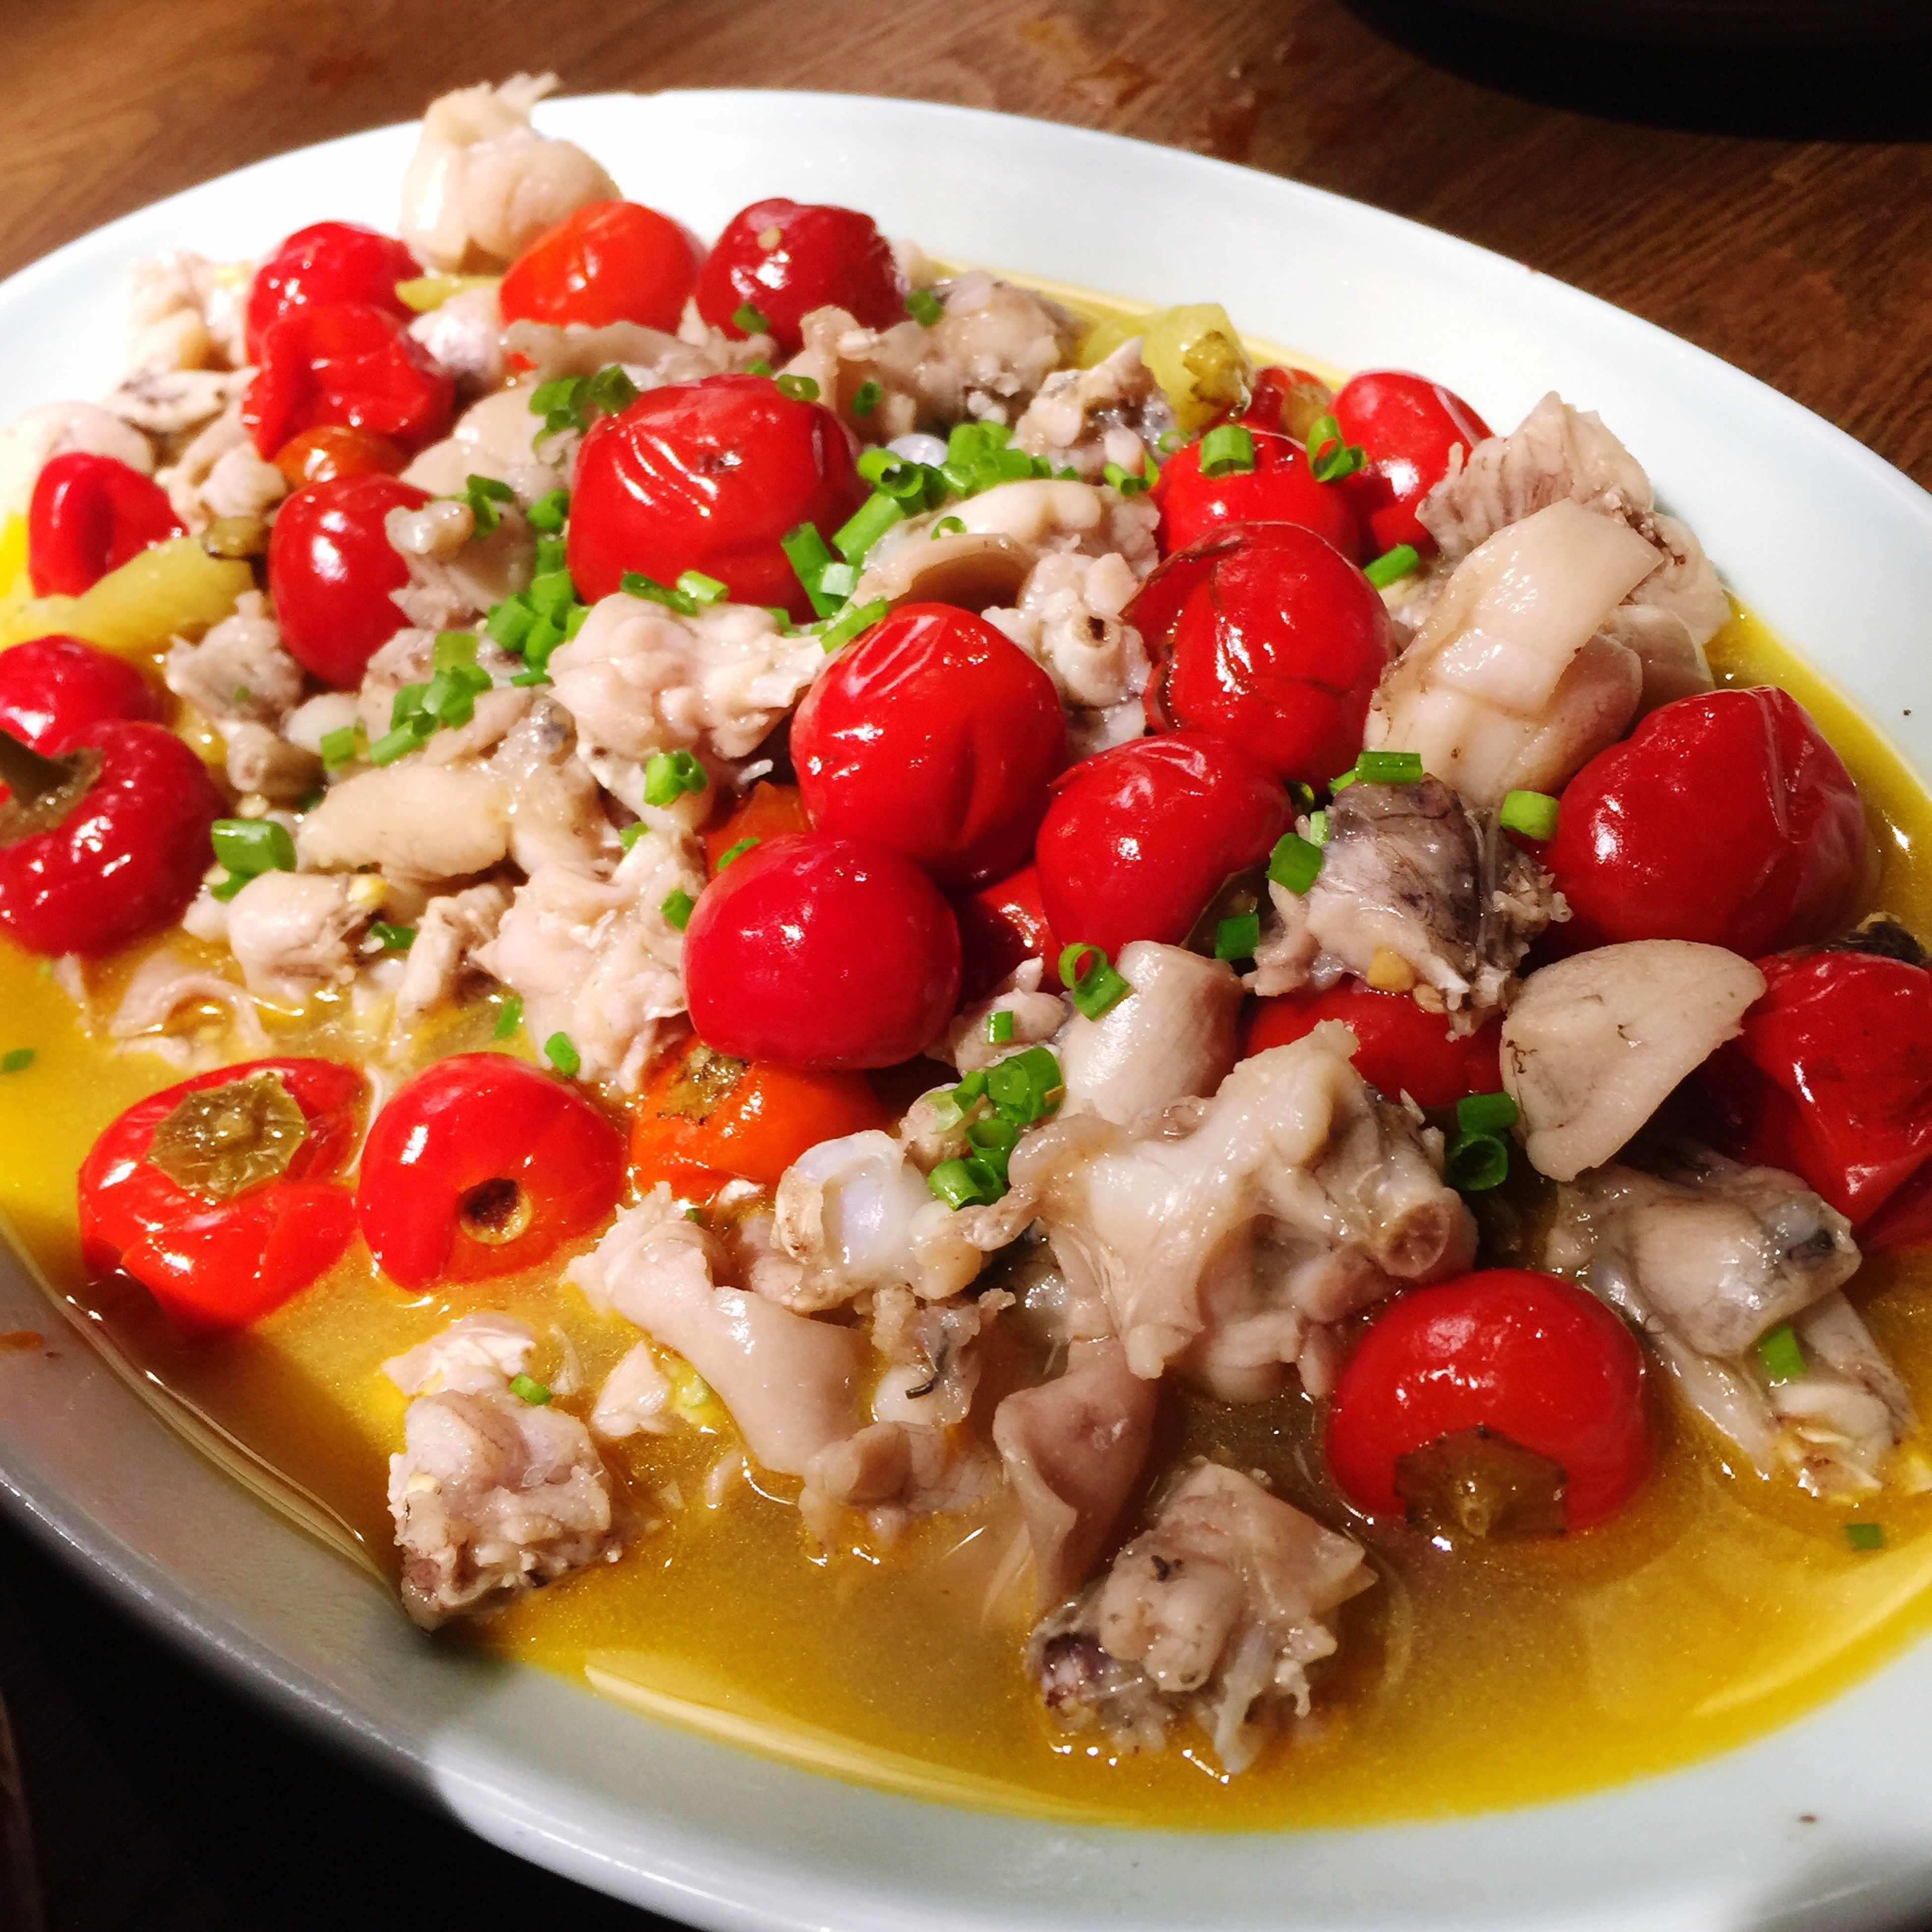 food and drink, food, tomato, ready-to-eat, freshness, serving size, plate, no people, indoors, bowl, close-up, red, healthy eating, day